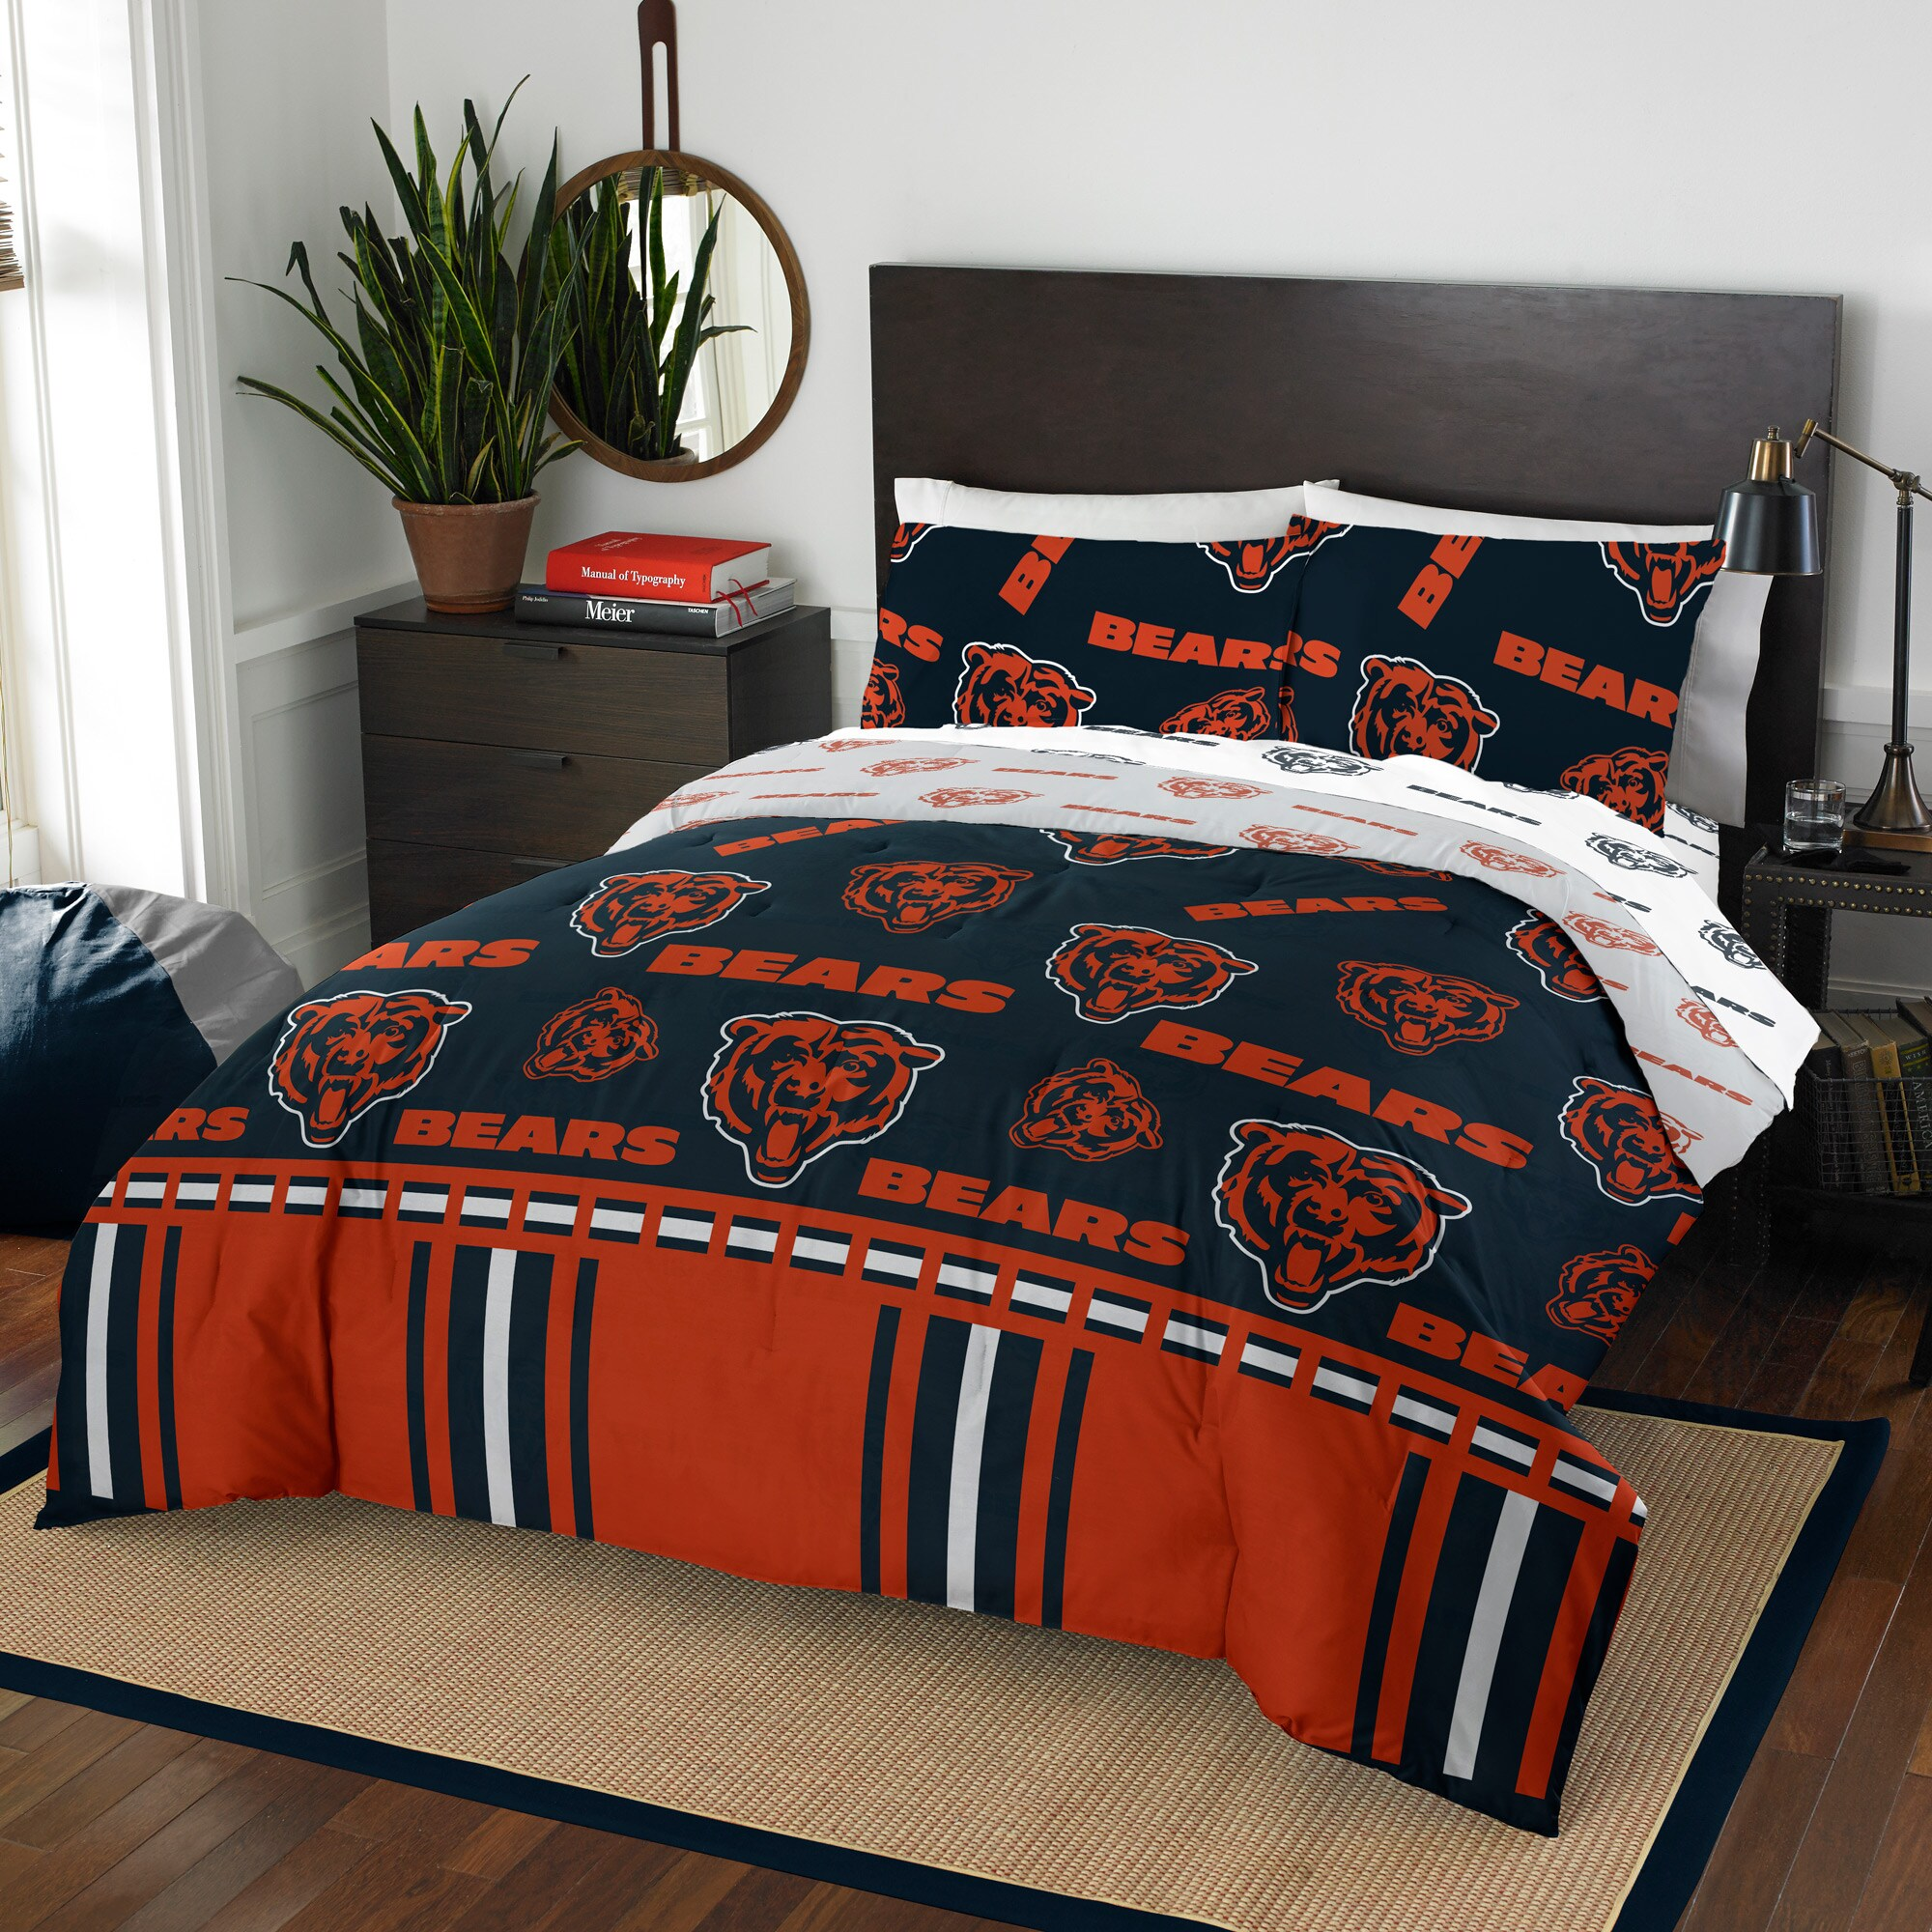 Chicago Bears The Northwest Company 5-Piece Full Bed in a Bag Set